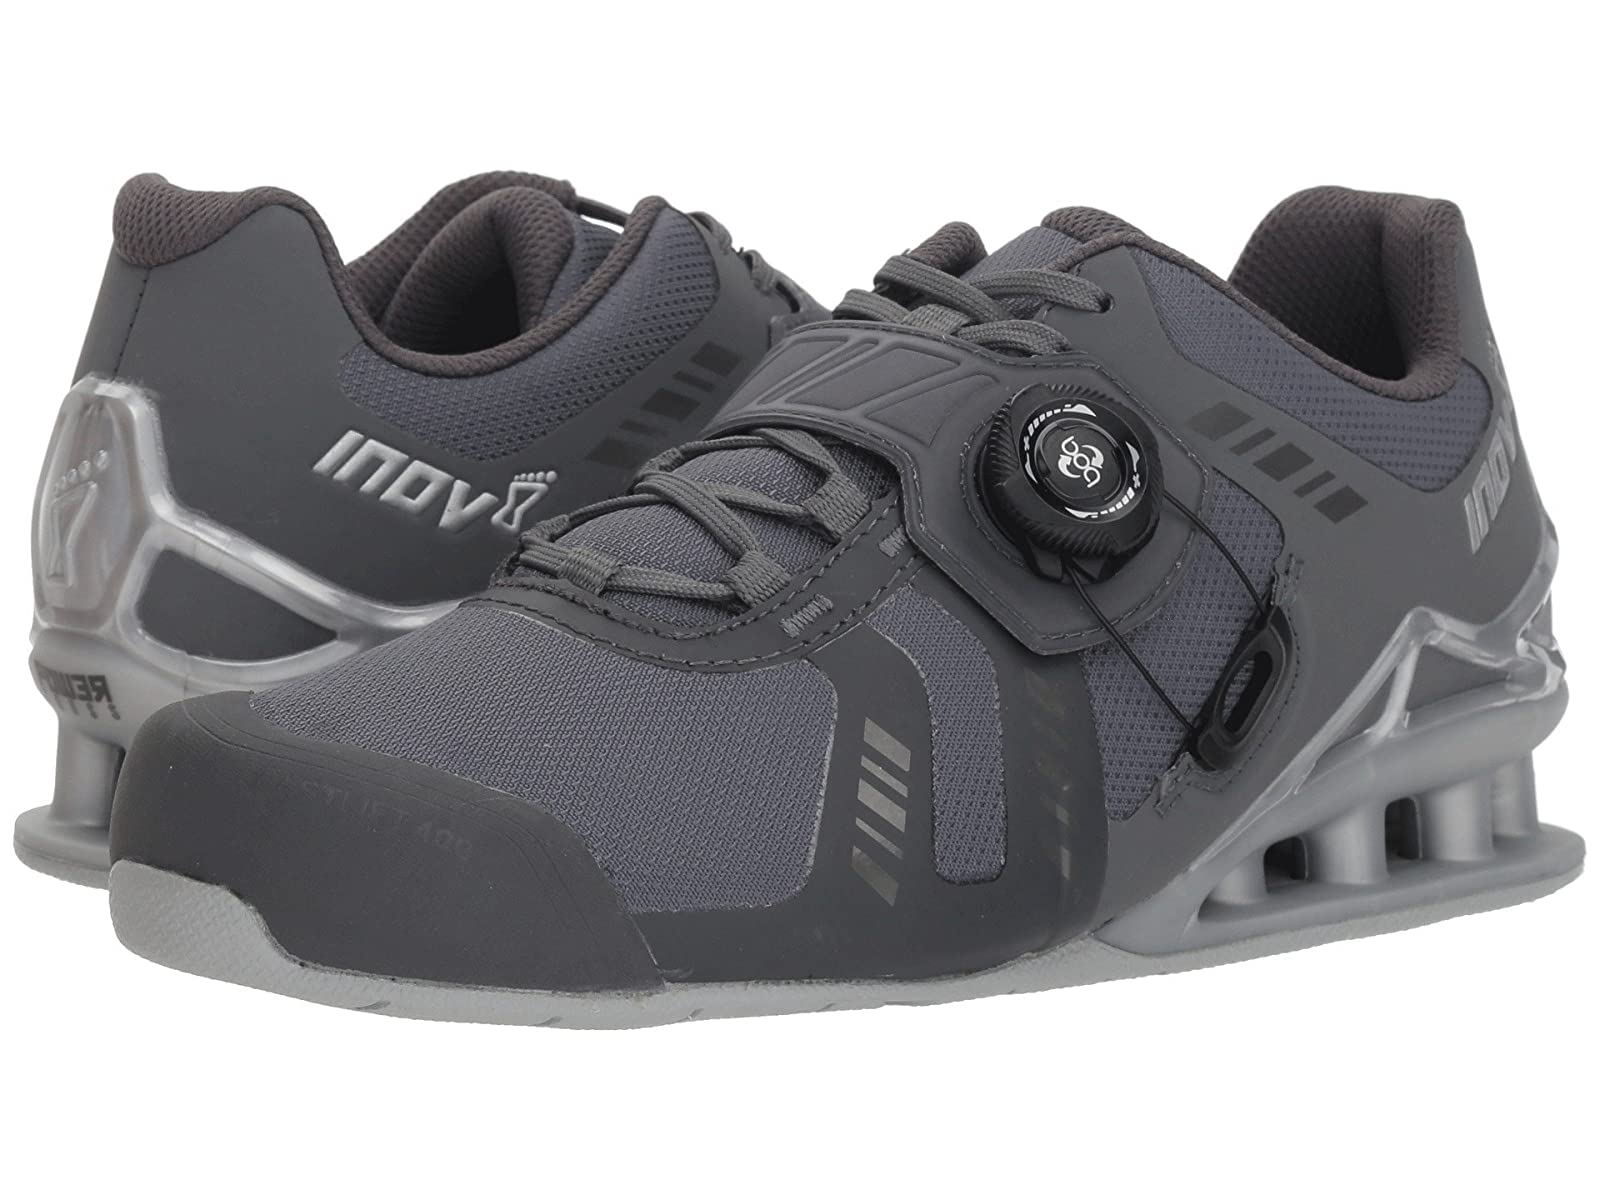 inov-8 Fastlift 400 BOACheap and distinctive eye-catching shoes